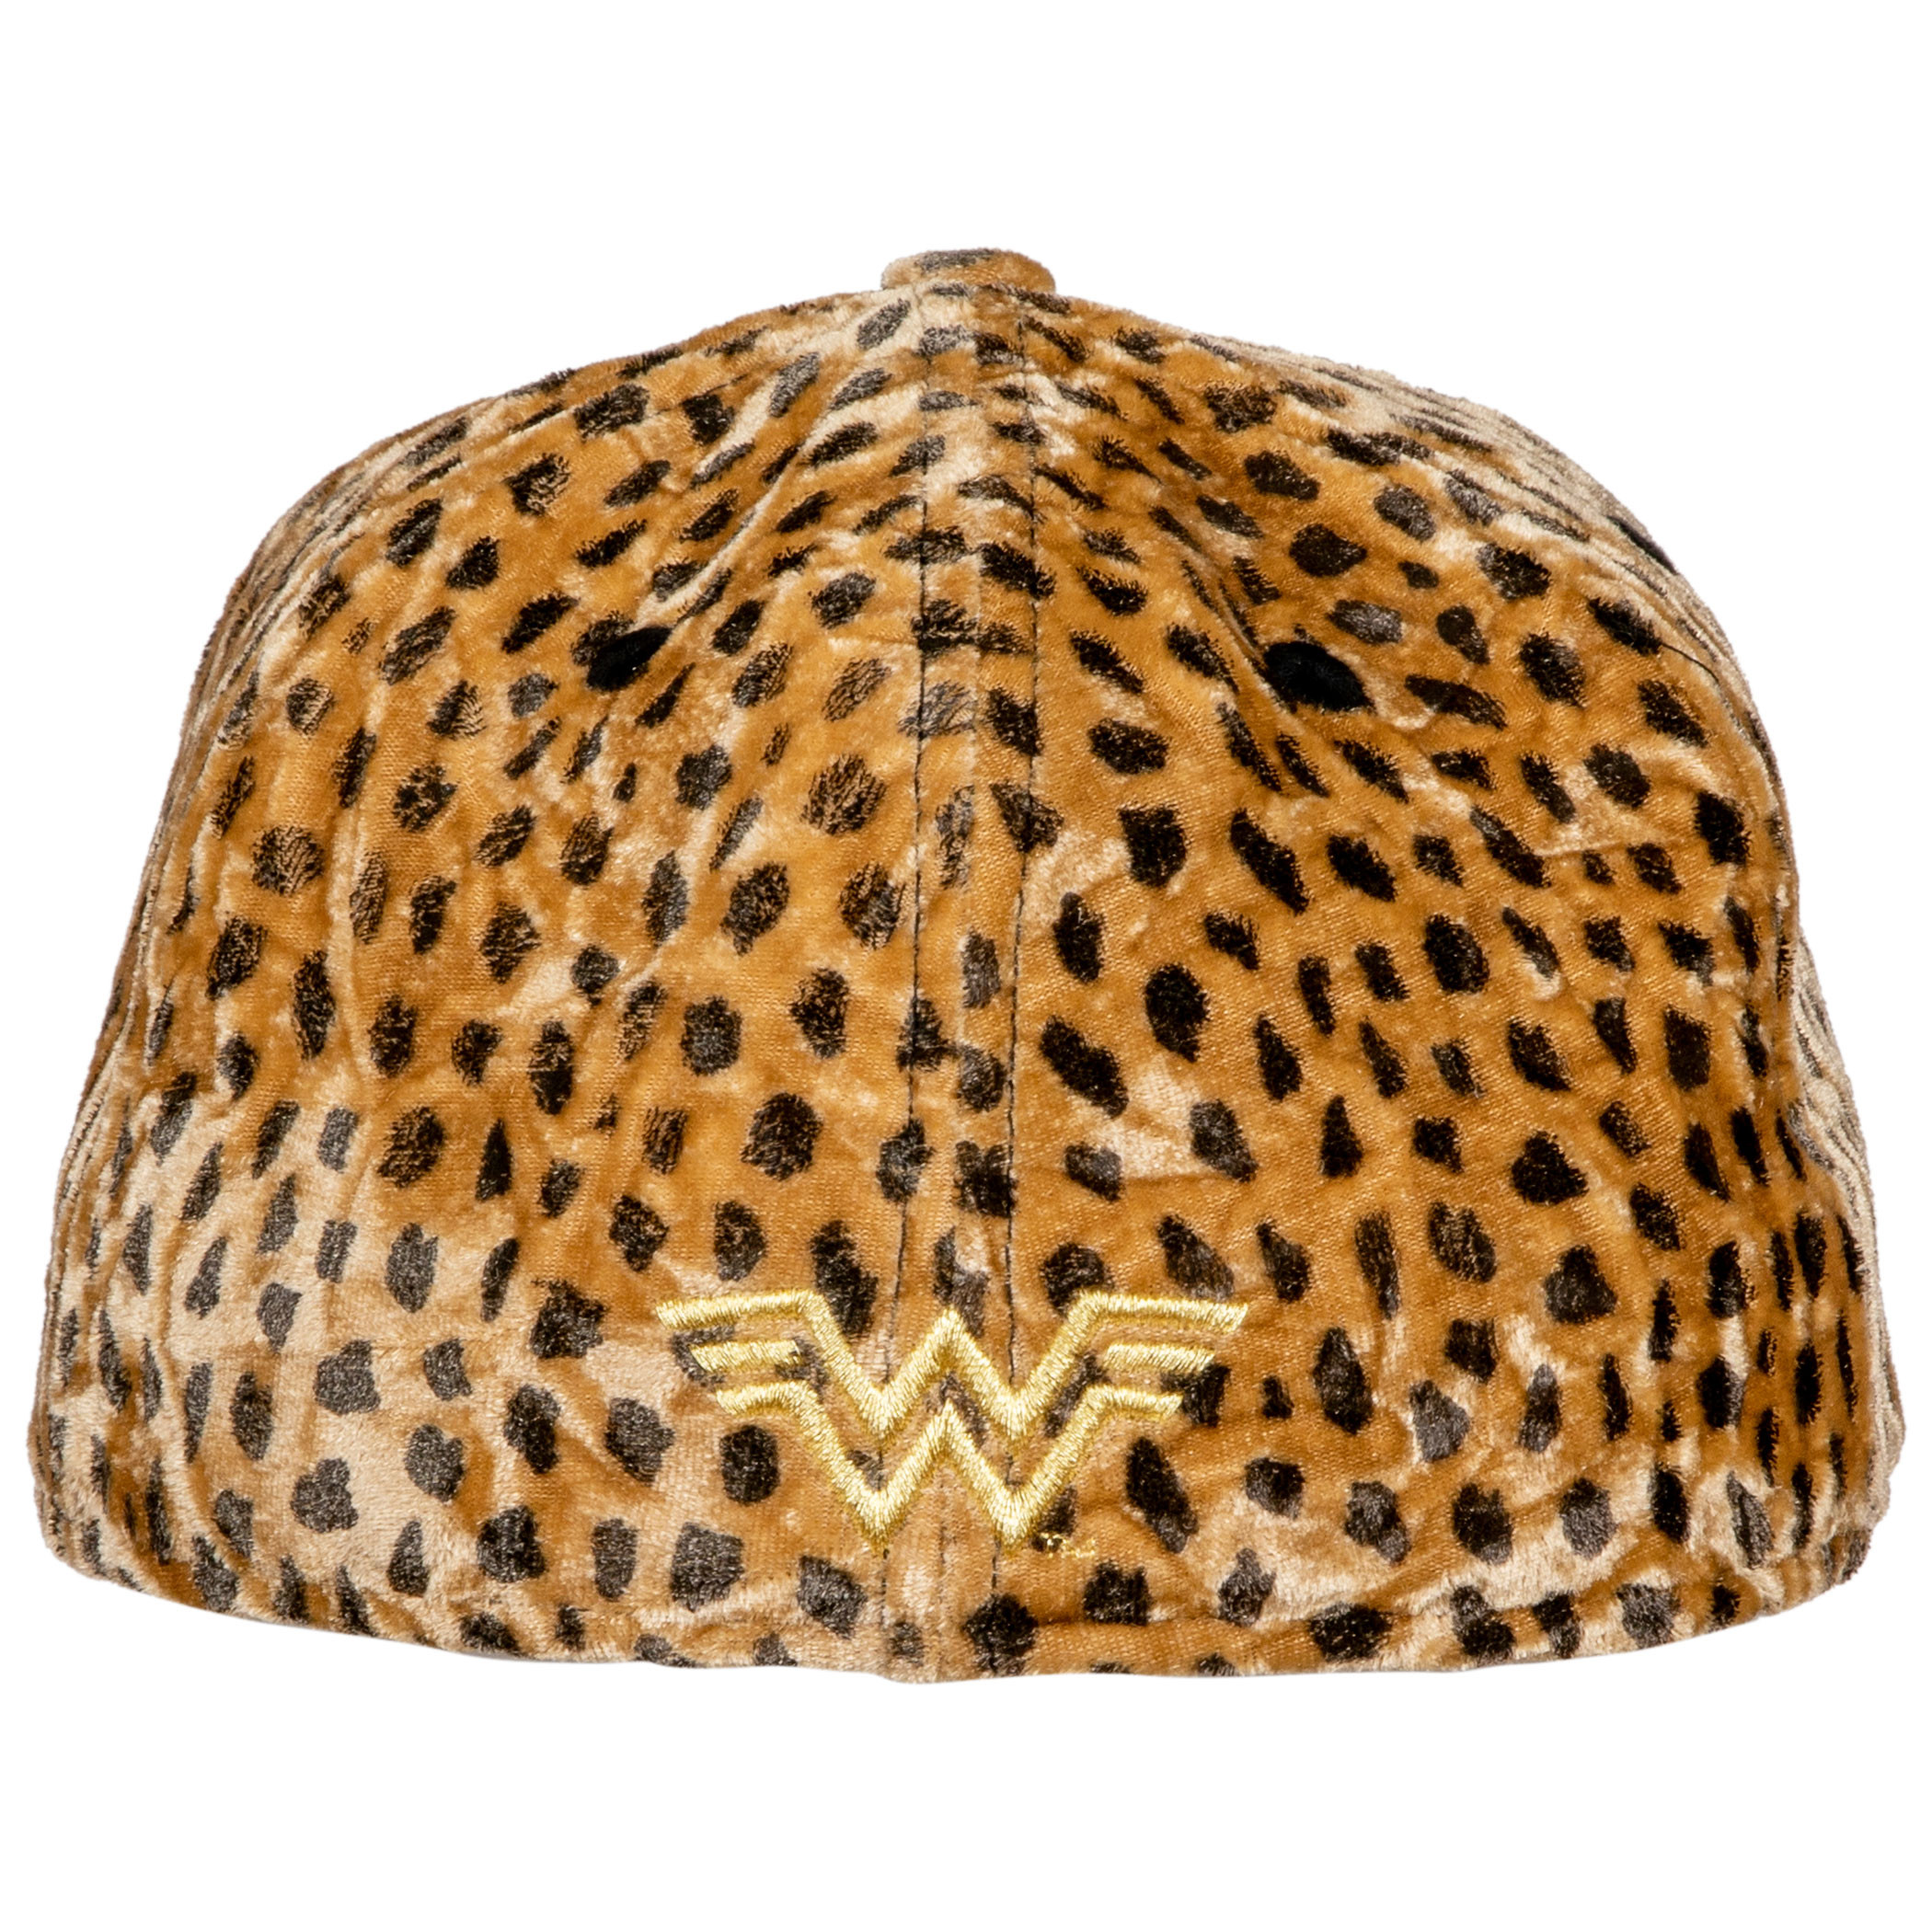 Wonder Woman 1984 Cheetah Character Armor 59Fifty Fitted New Era Hat